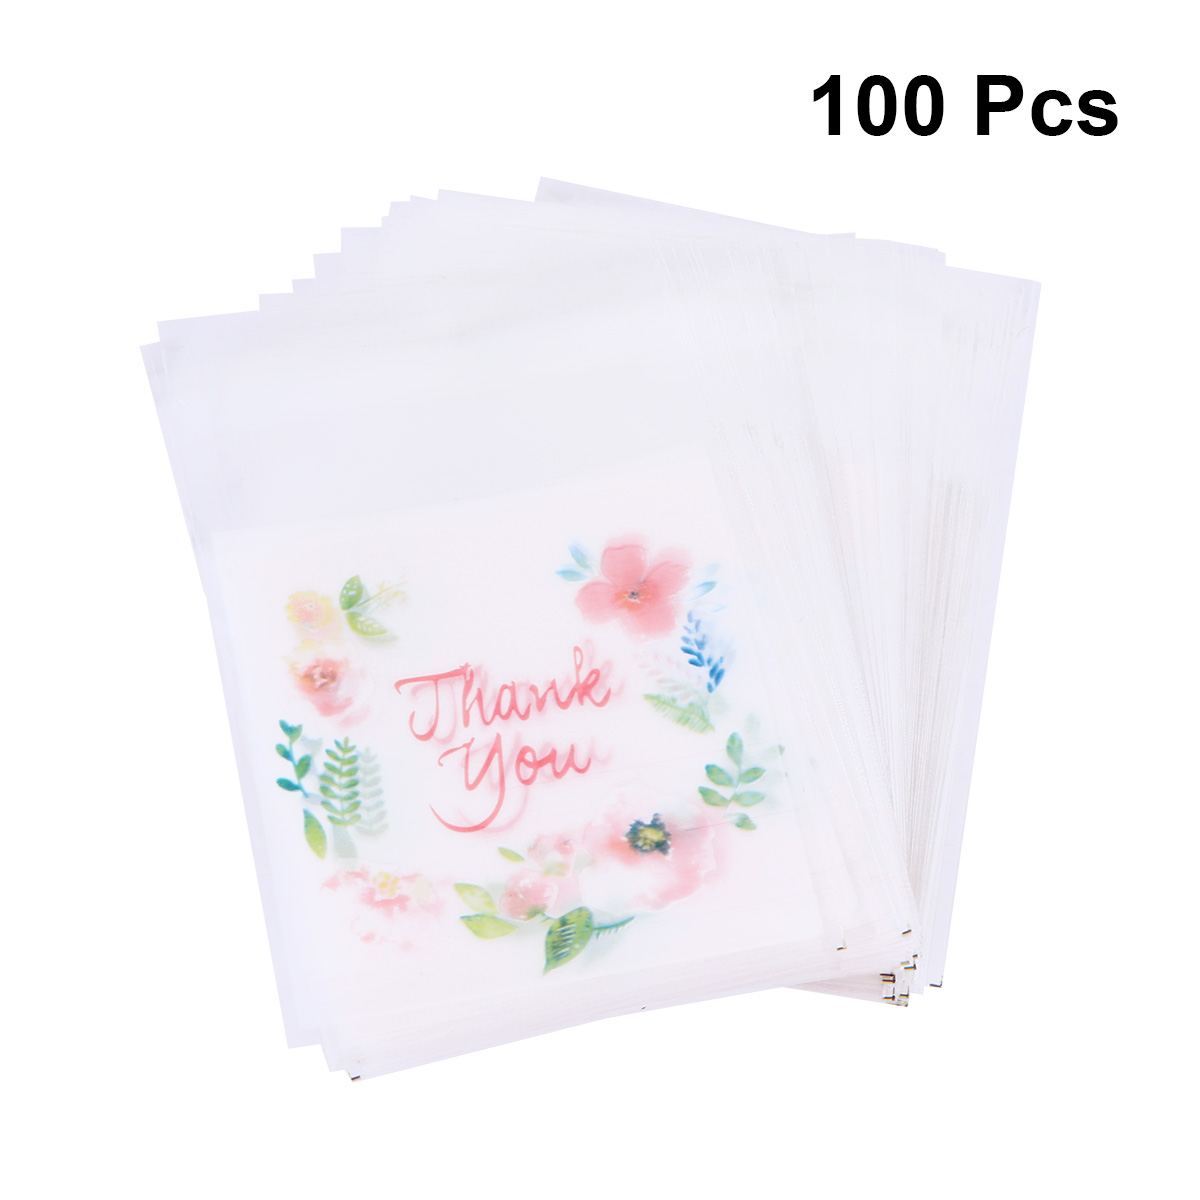 100 Pcs Plastic Bags Thank you Cookie&Candy Bag Self-Adhesive For Wedding Birthday Party Gift Bag Biscuit Baking (7x10cm)